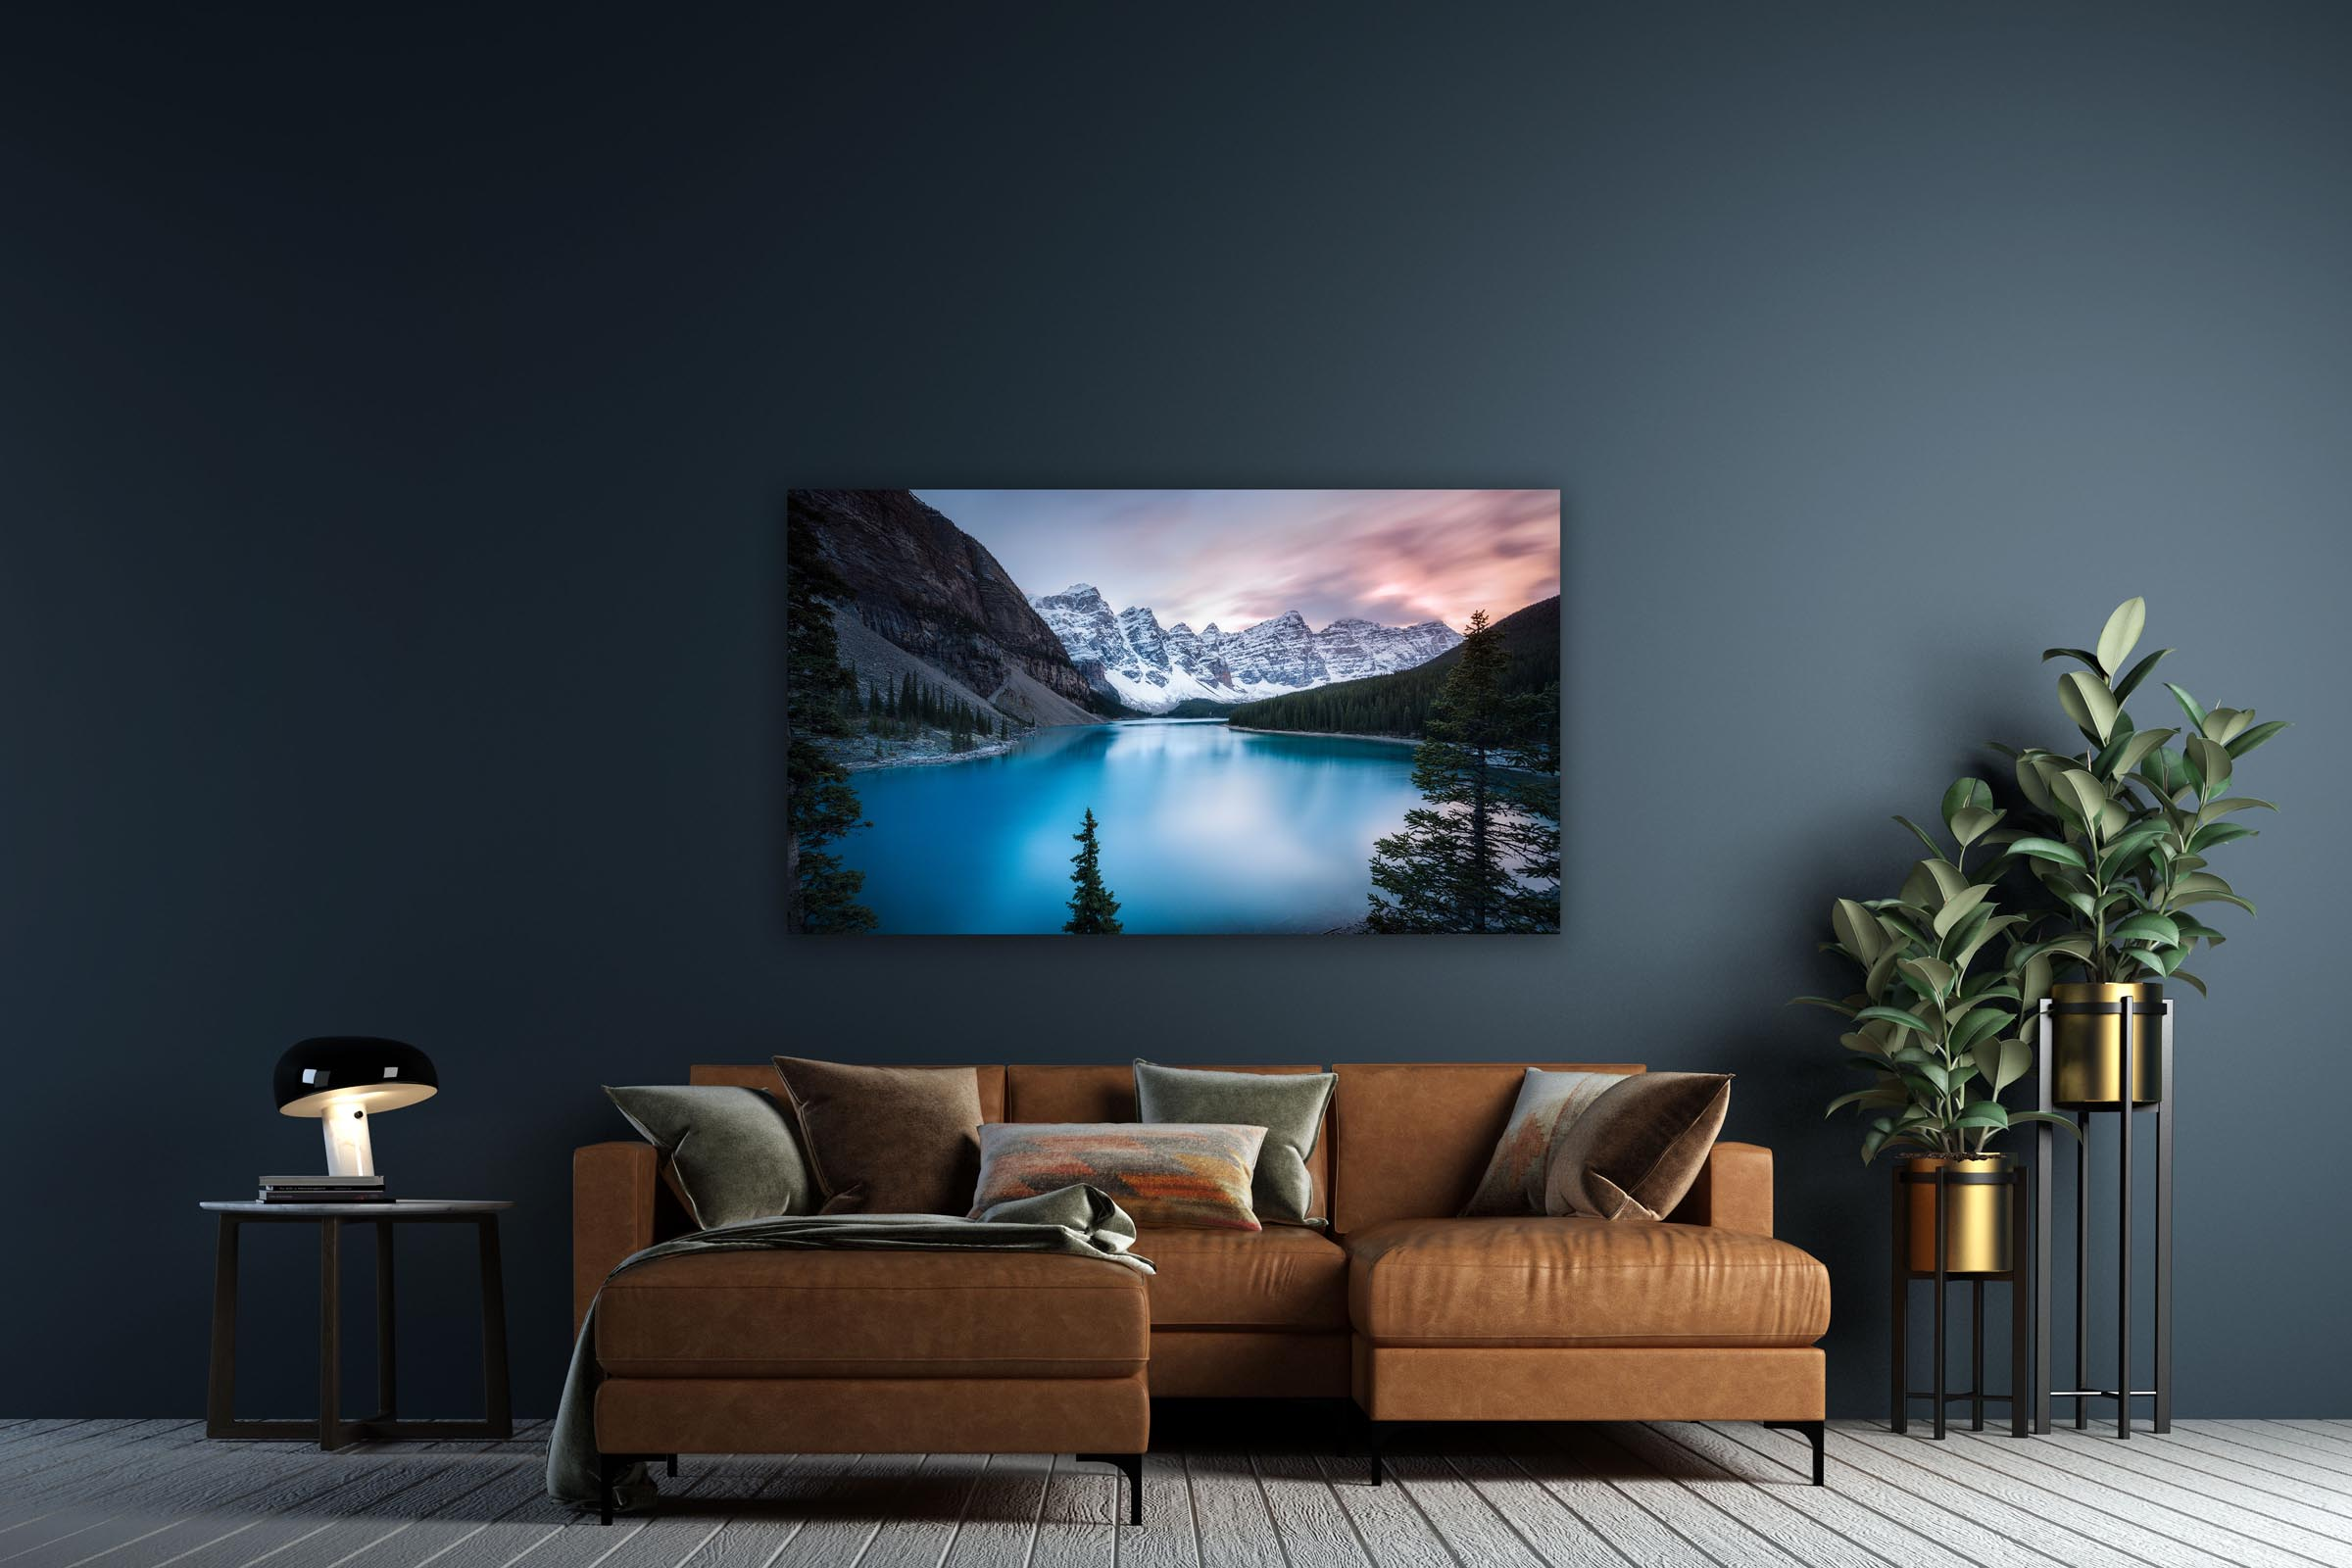 Wall art of Moraine Lake in Banff, Canada by Brent Goldman Photography